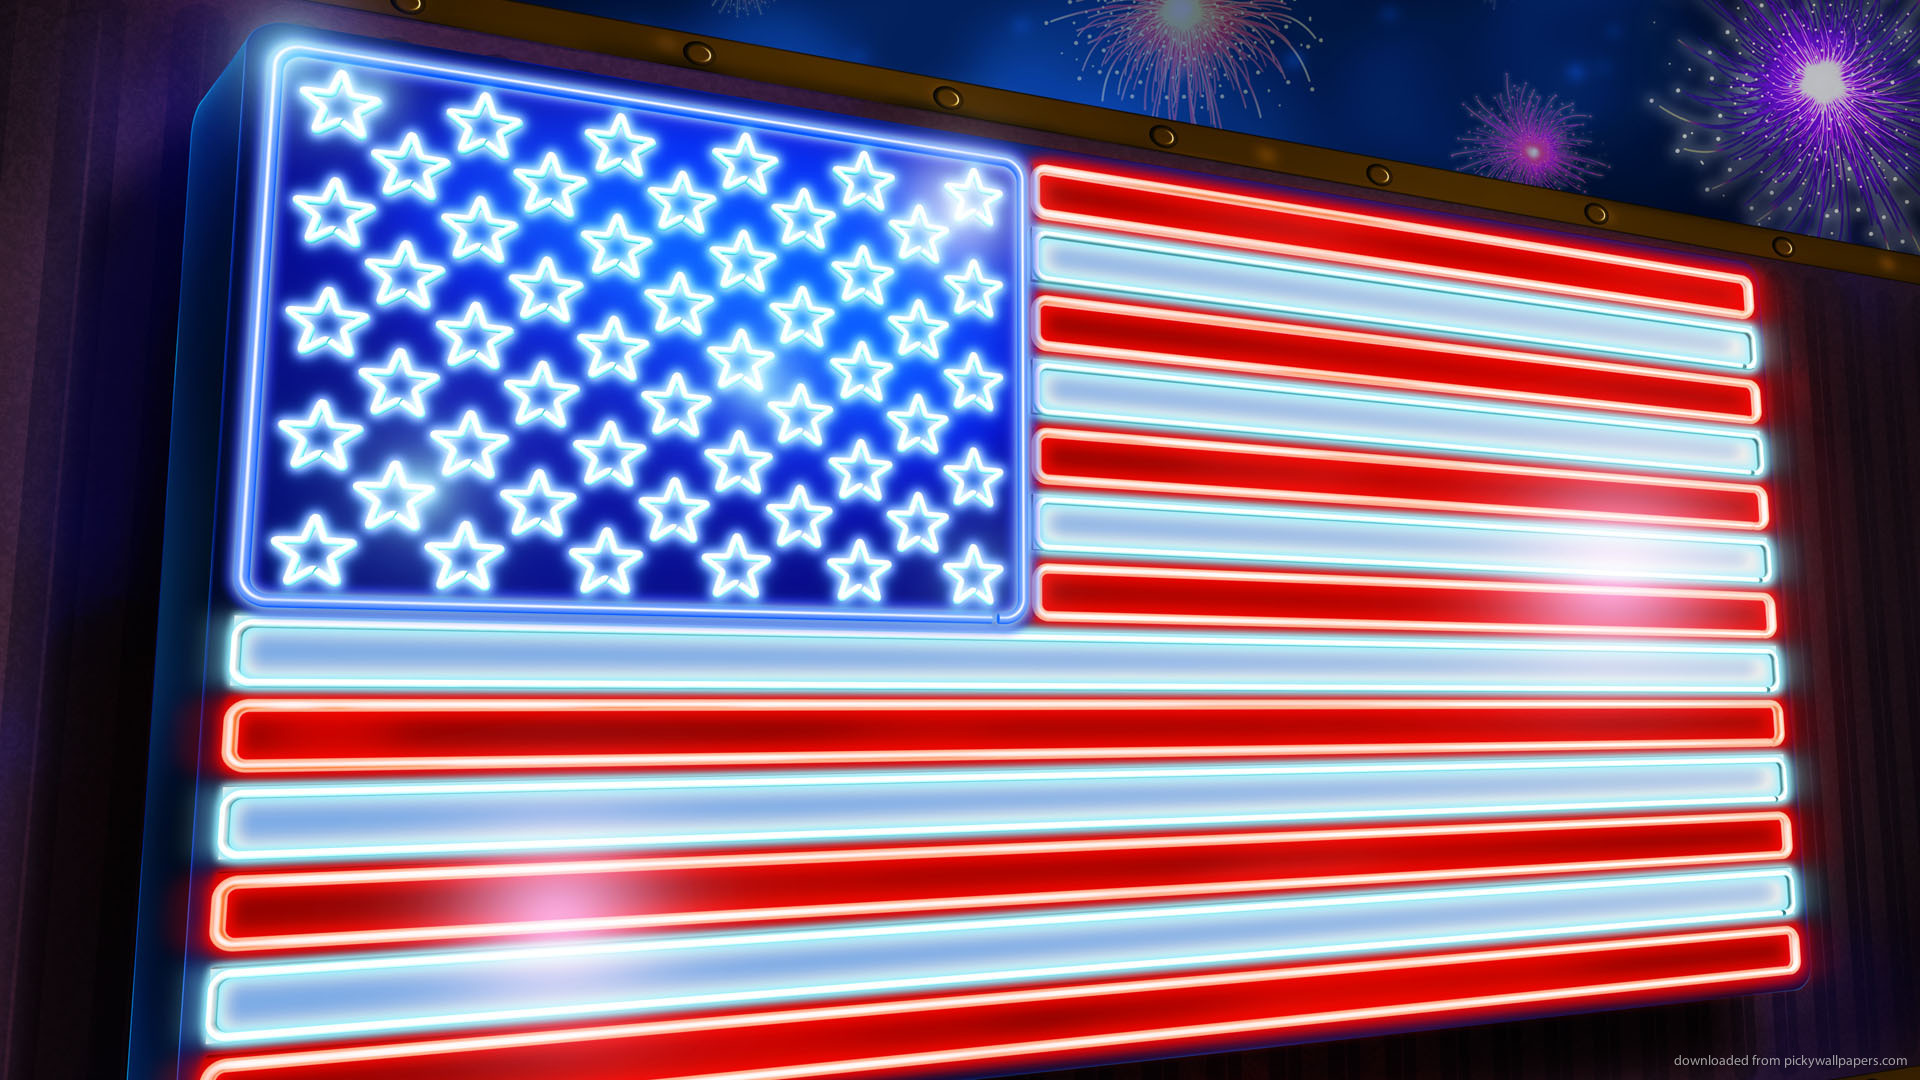 HD wallpaper archived by usa flag wallpaper 1920x1080 1920x1080